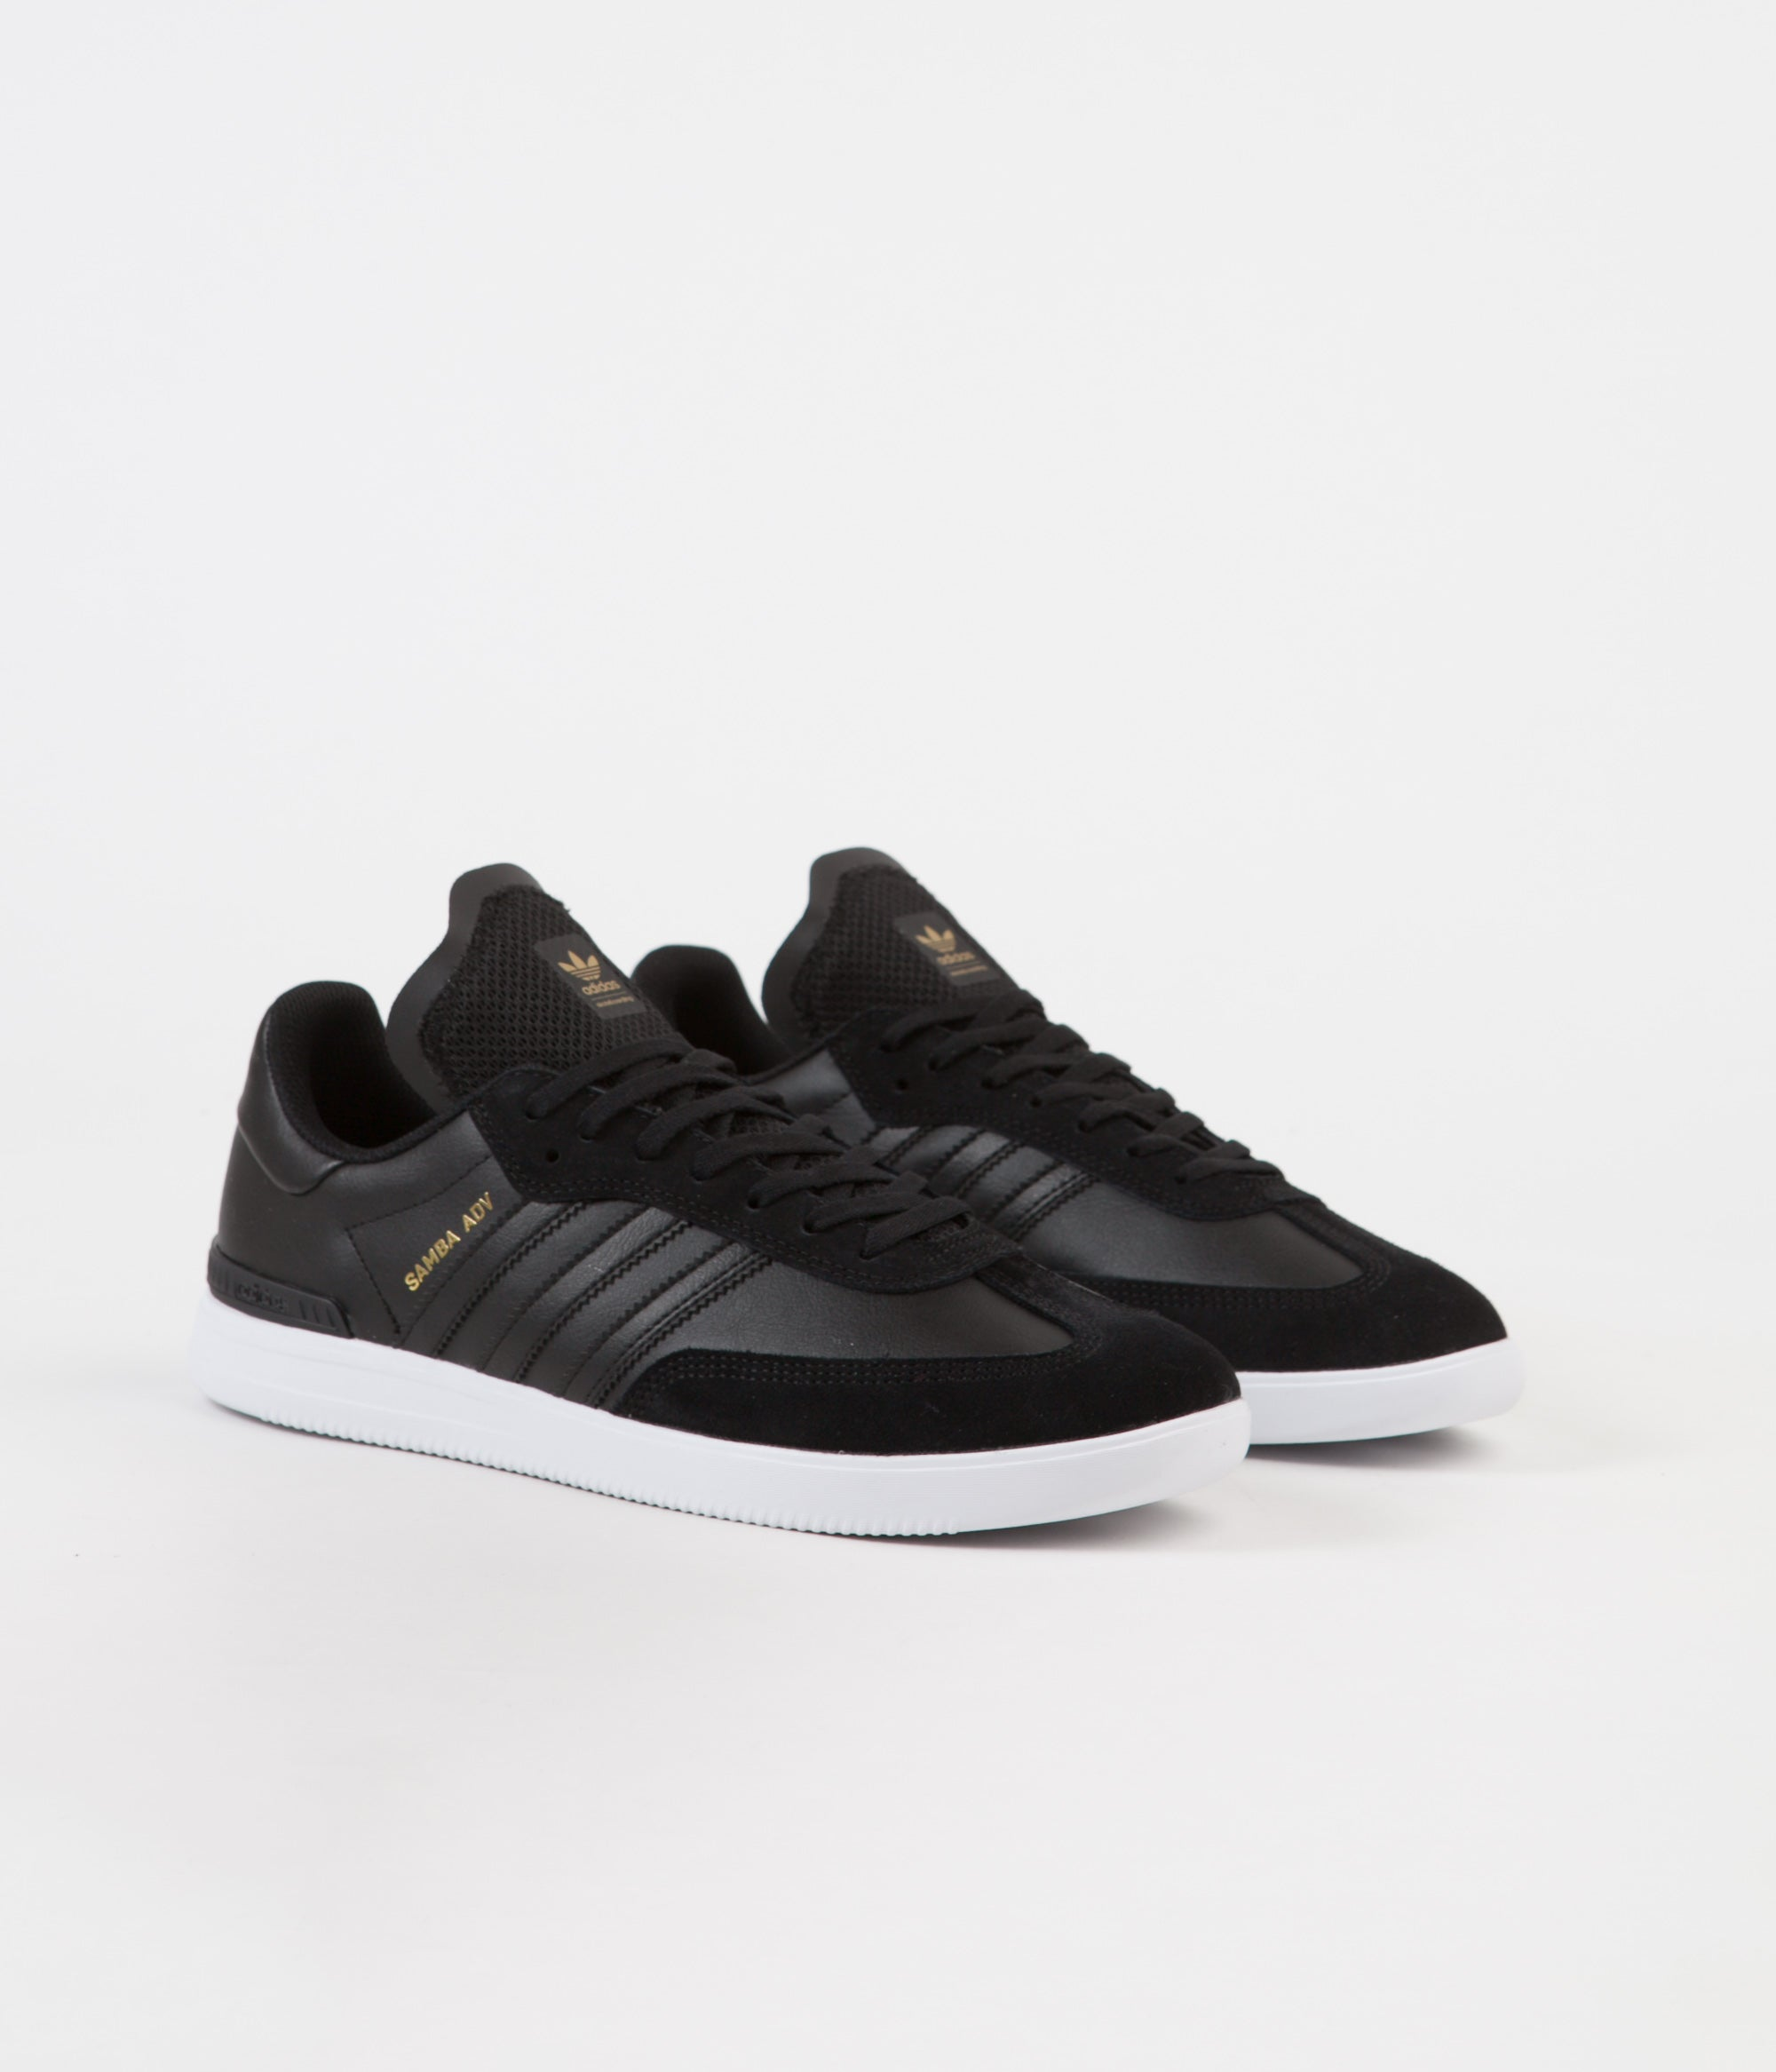 save off 44a31 f162e ... Adidas Samba ADV Shoes - Core Black  White  Gold Metallic ...